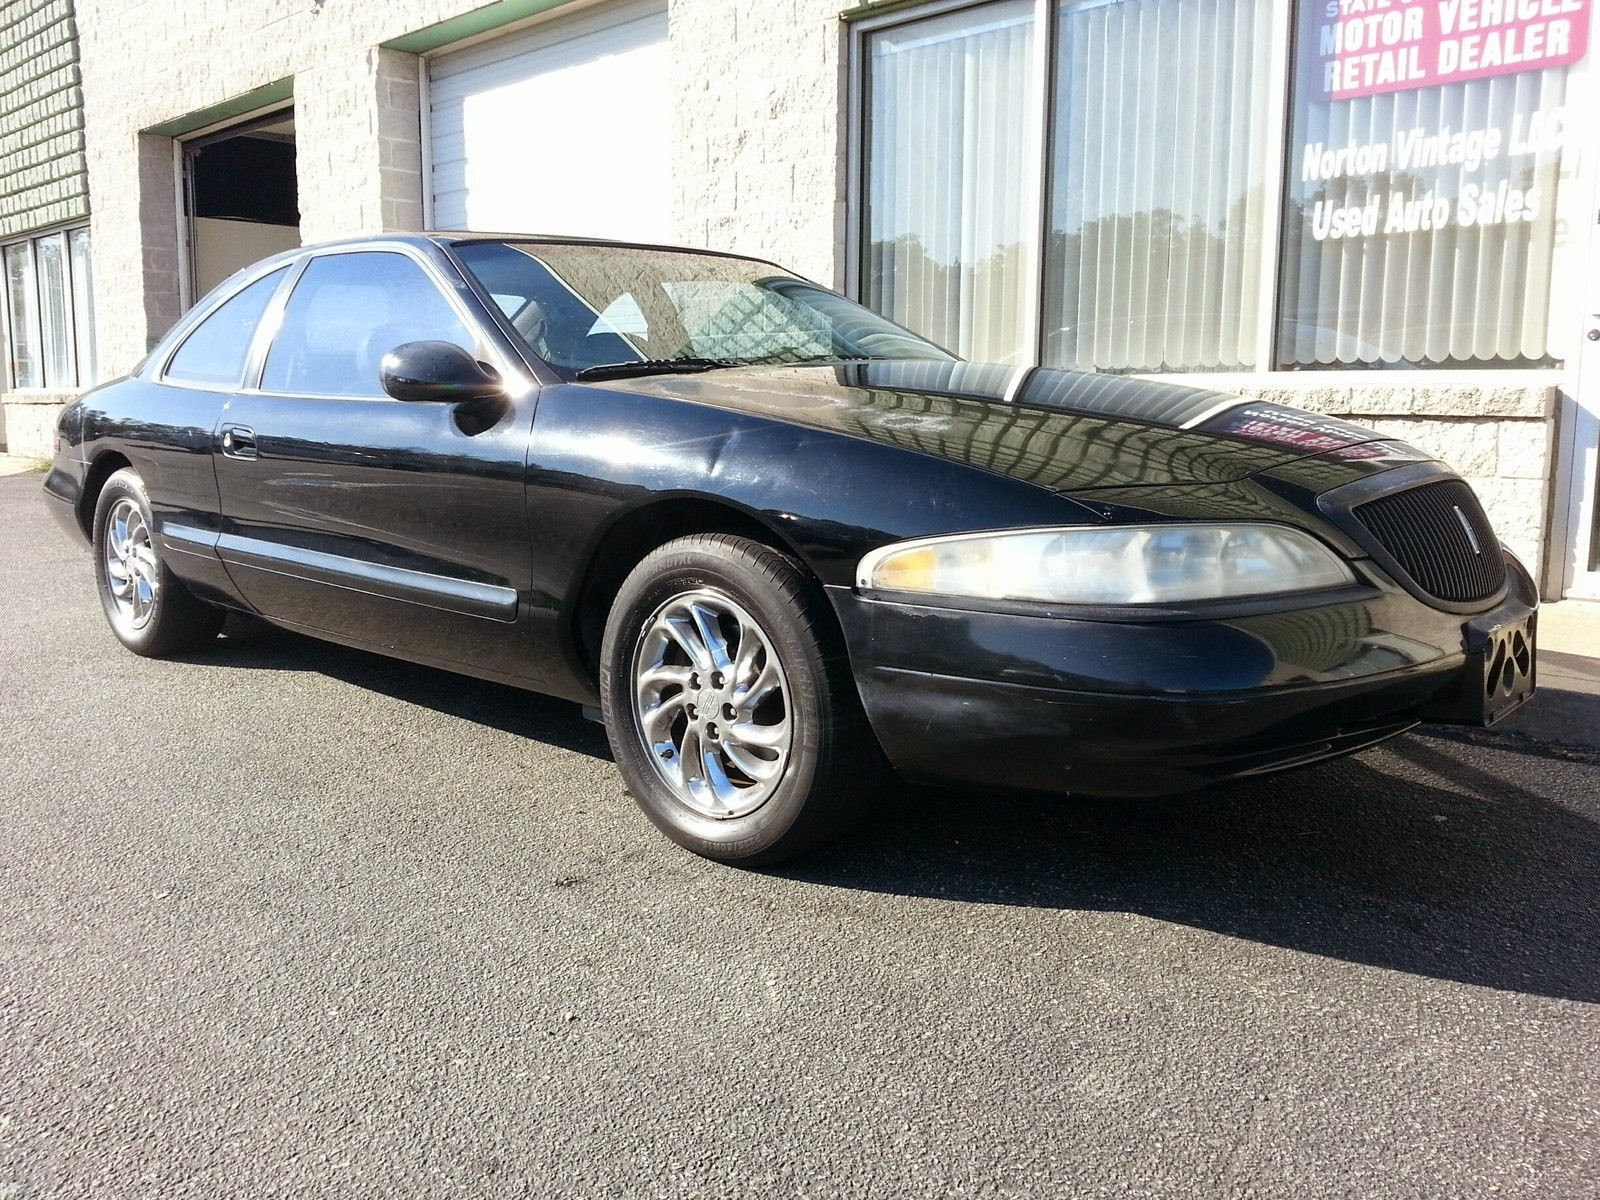 Daily Turismo: 1k: End Of An Era: 1998 Lincoln Mark VIII LSC